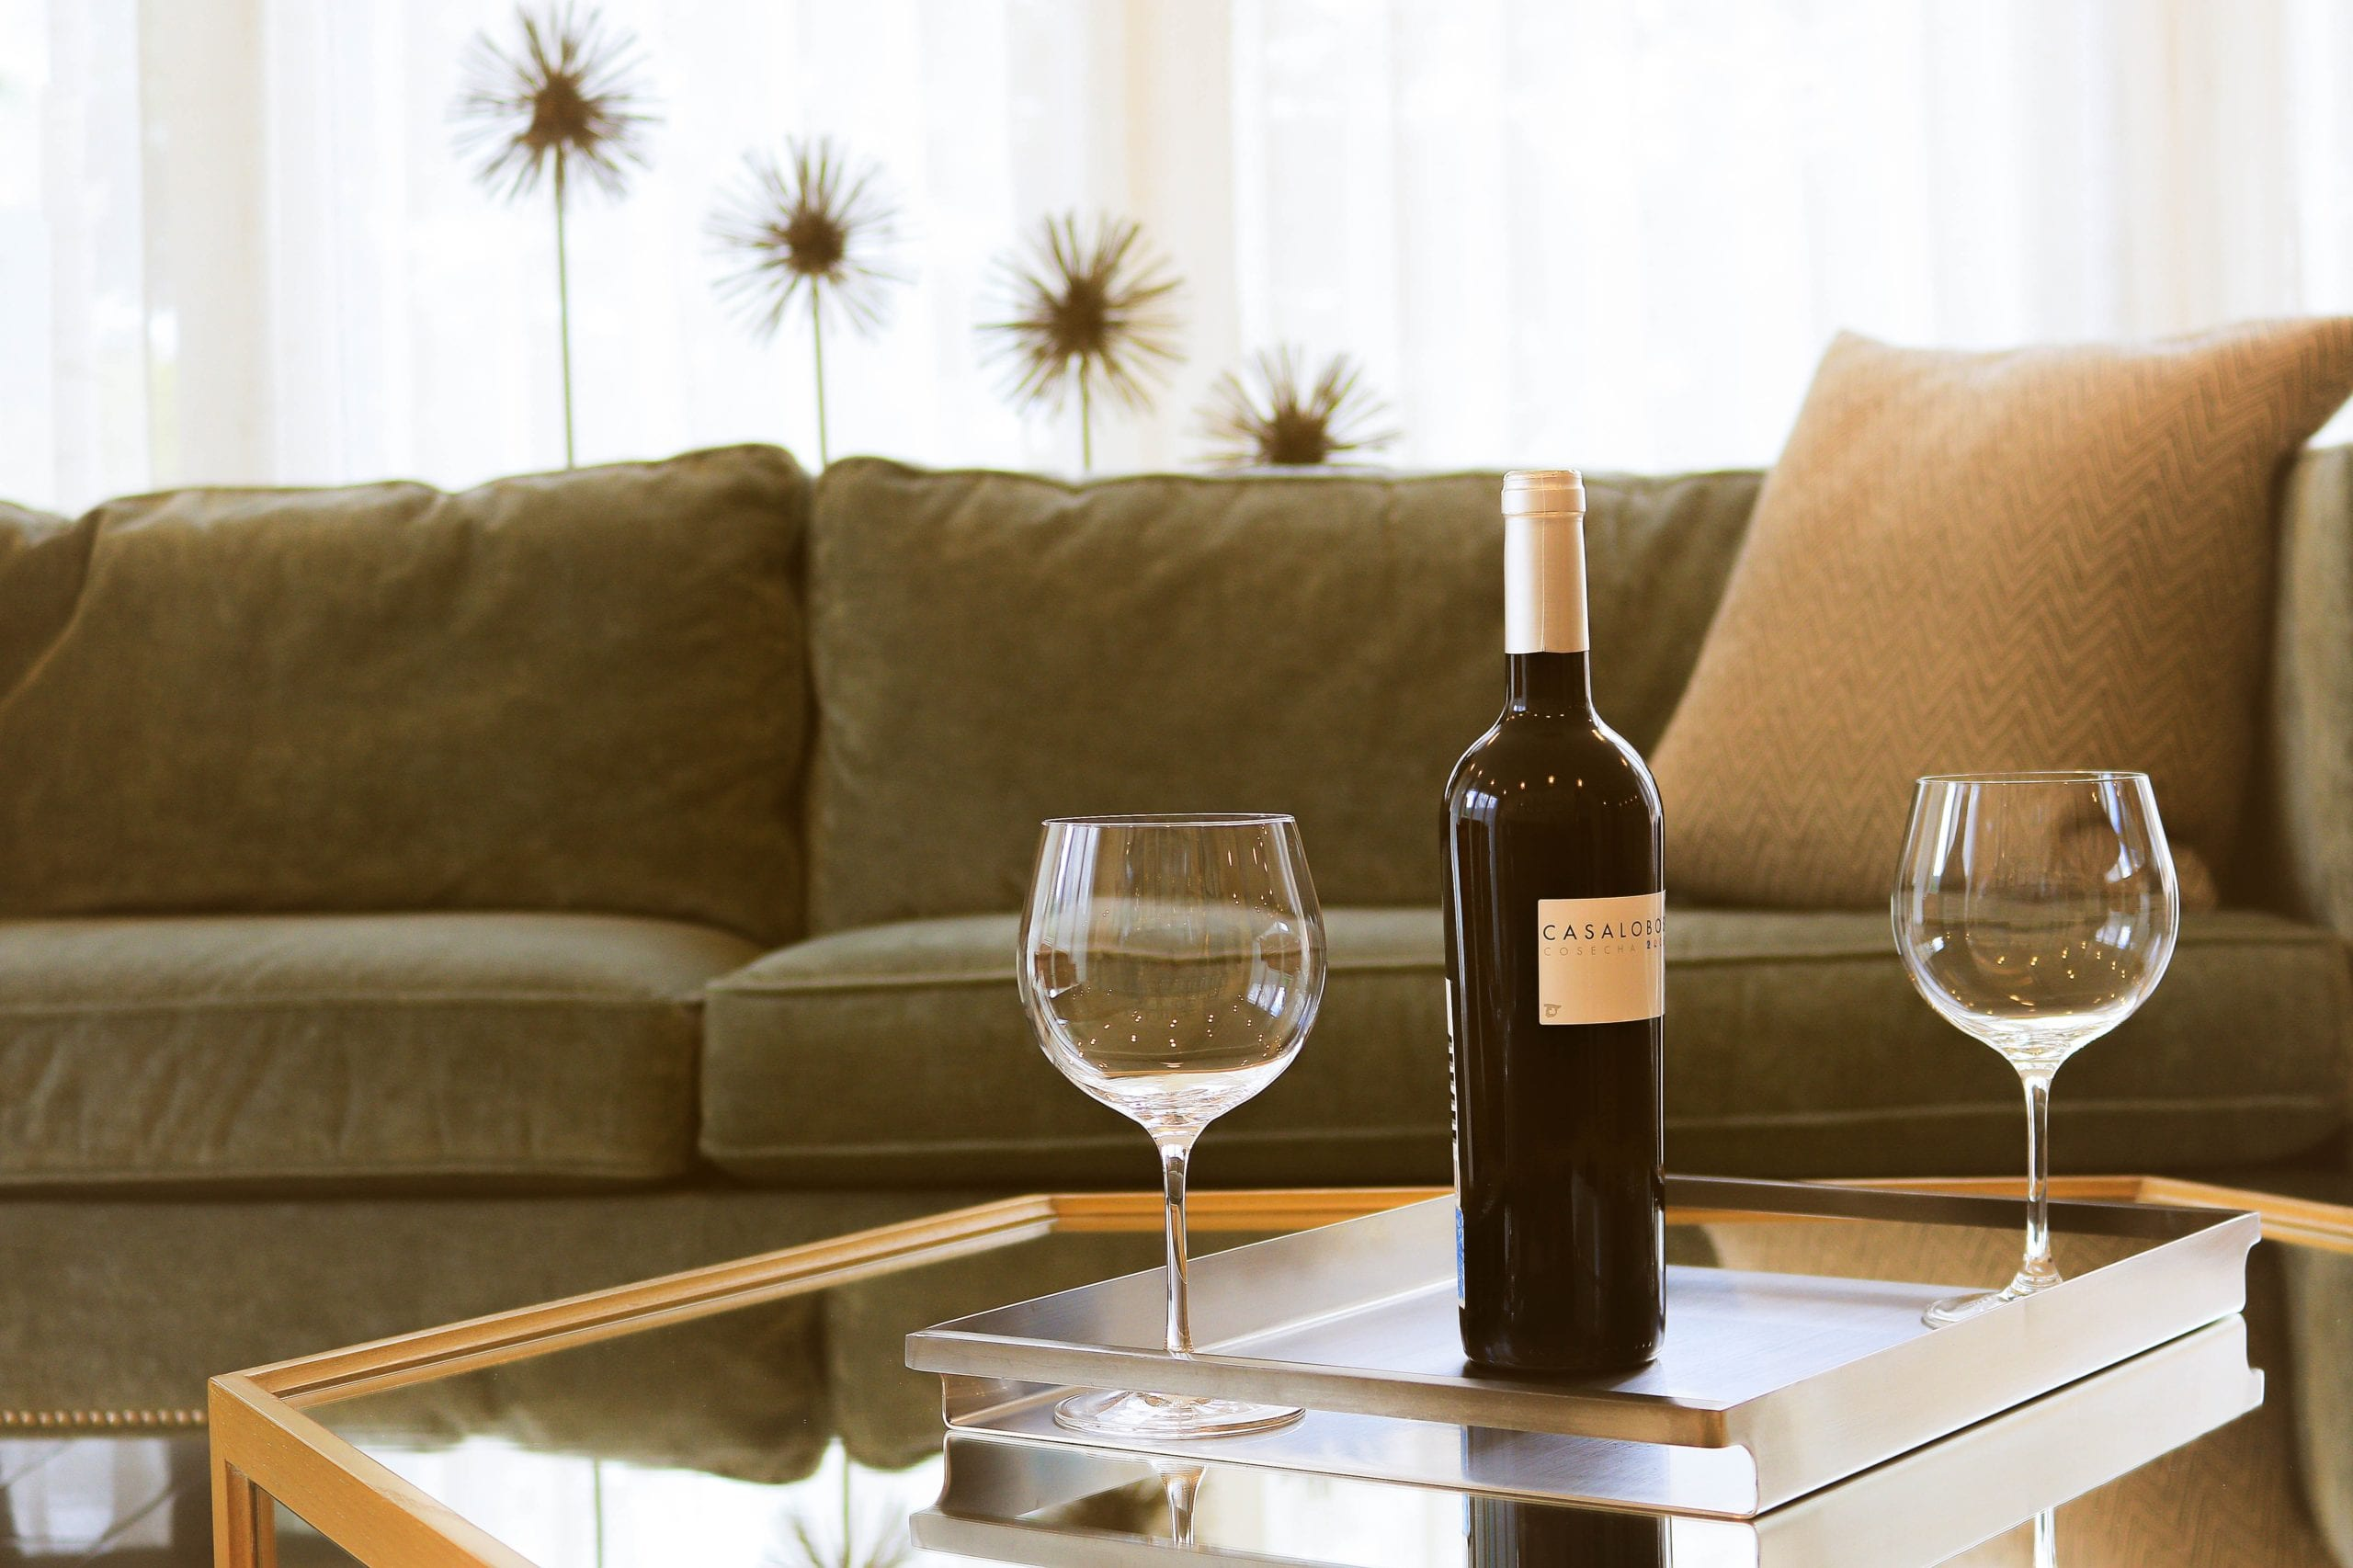 A red wine glass has a bigger, wider bowl to allow bold aromas to come to the fore.